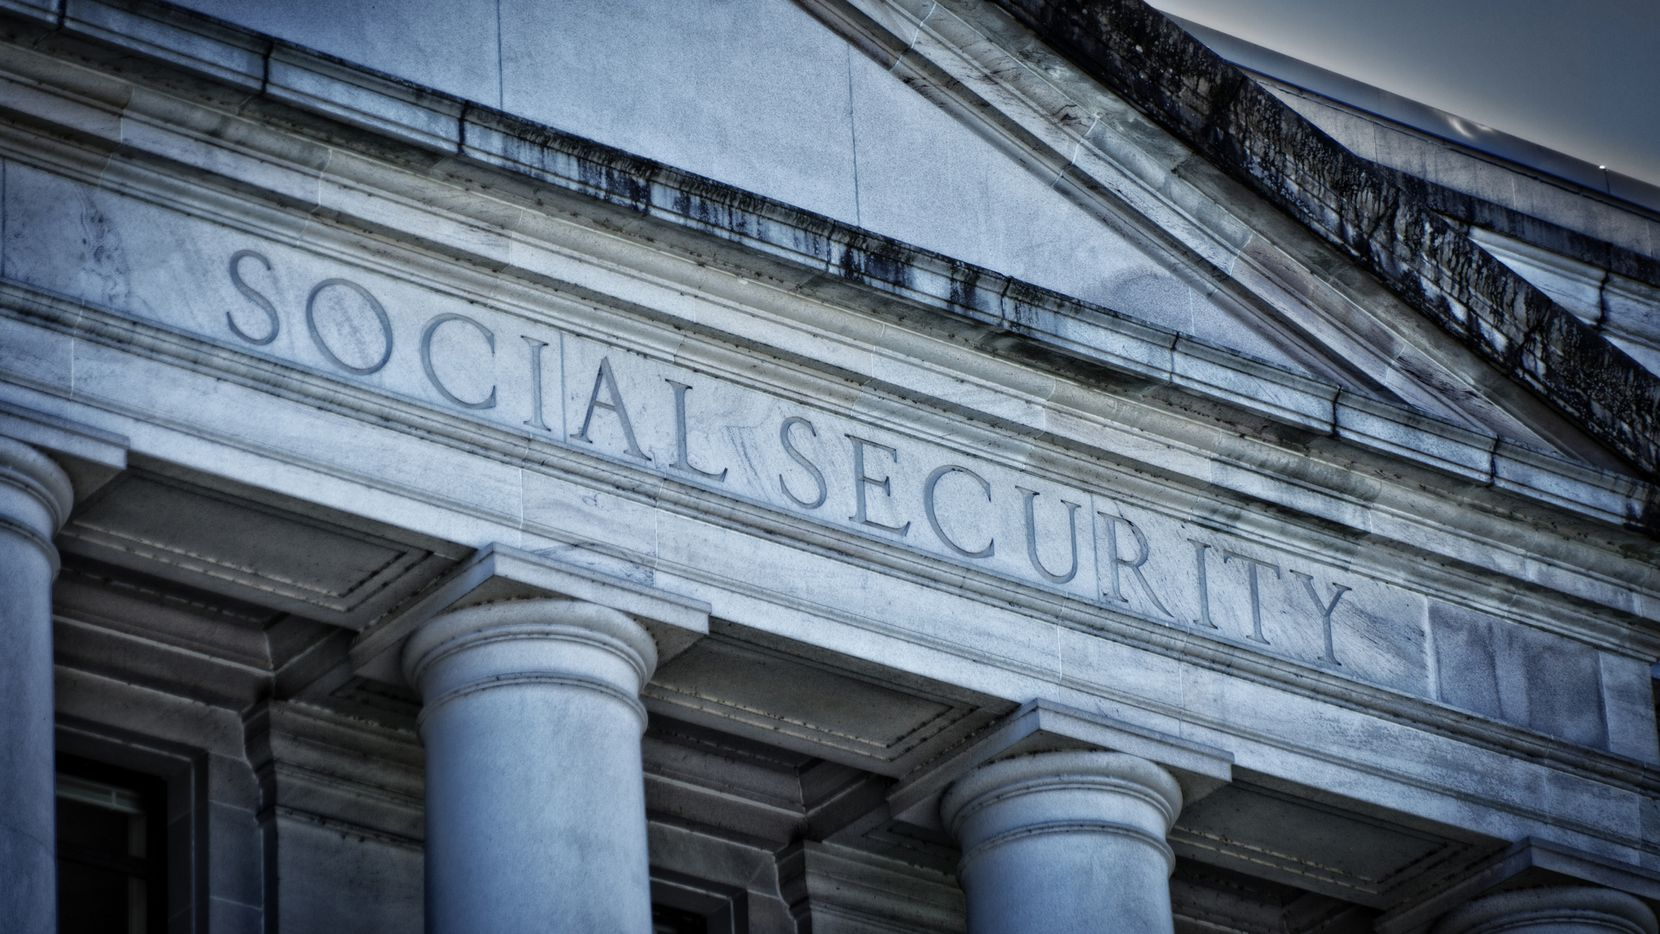 Back when Social Security laws were enacted in the 1930s, Congress felt that they could not force a federal pension plan (Social Security) on state and local governments.